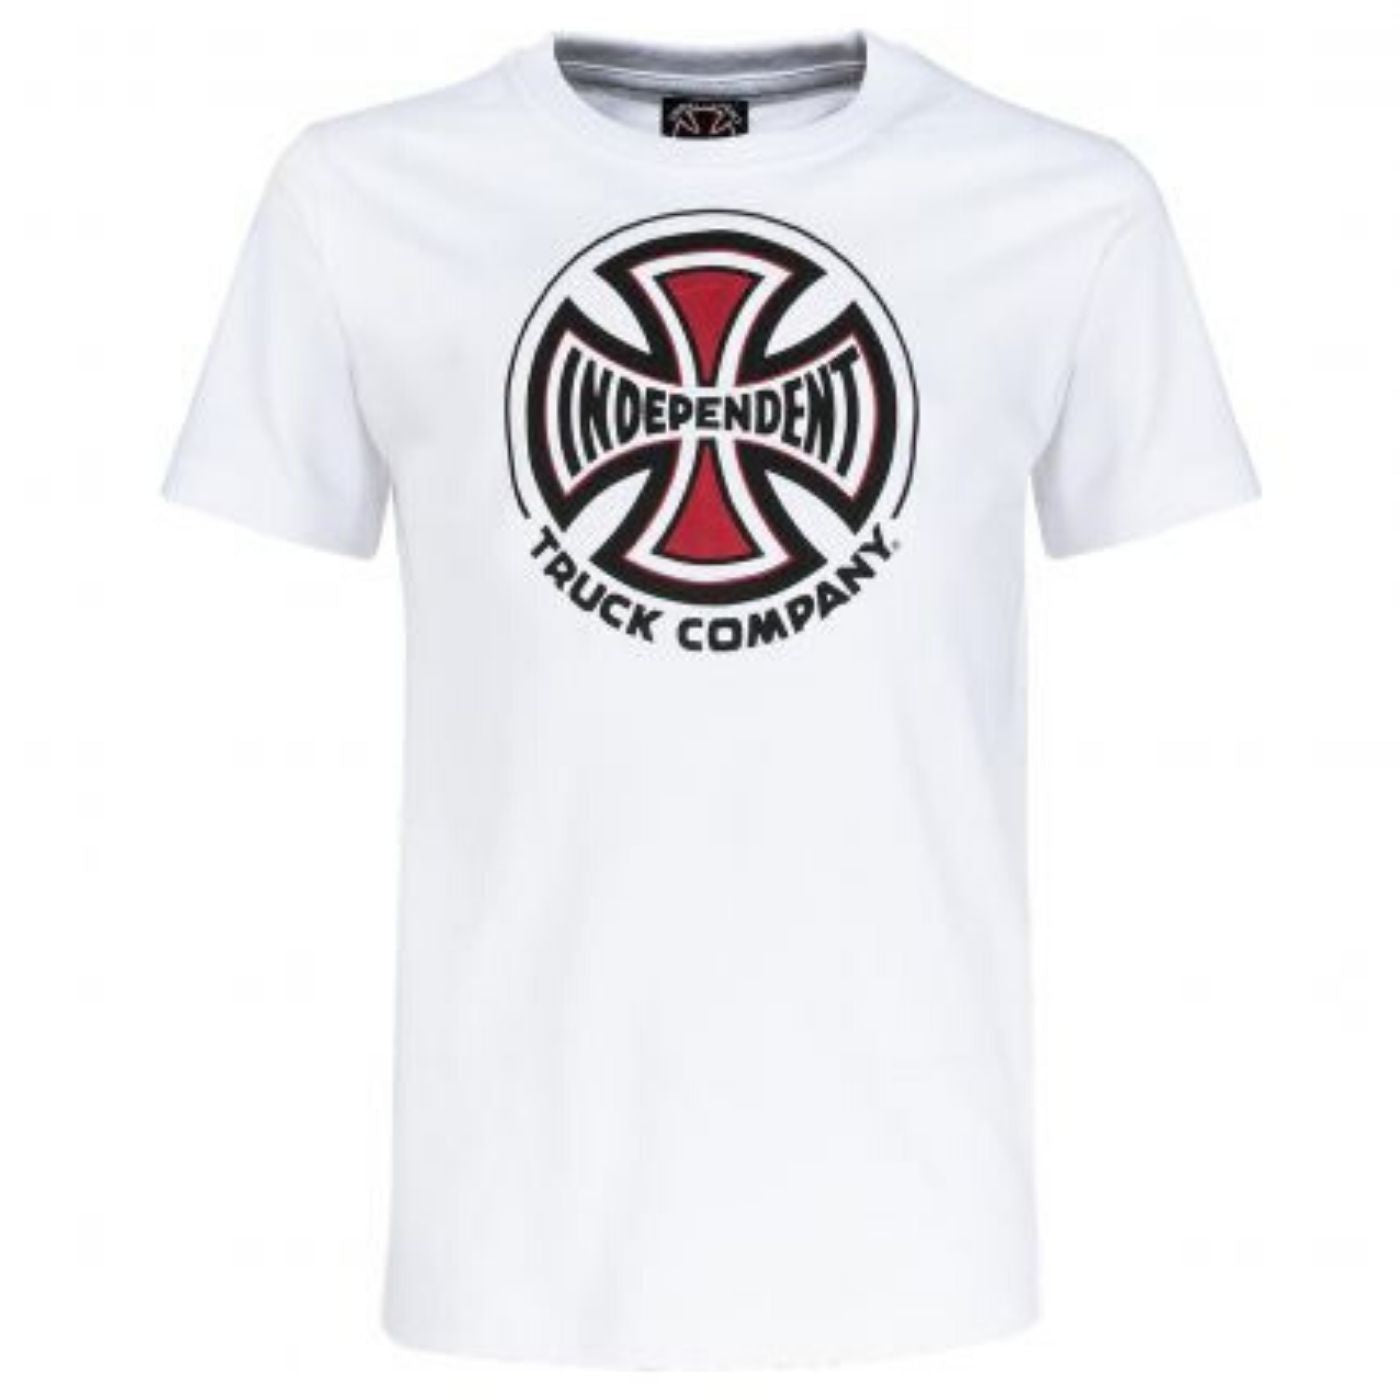 Kids Truck Co. T-Shirt White